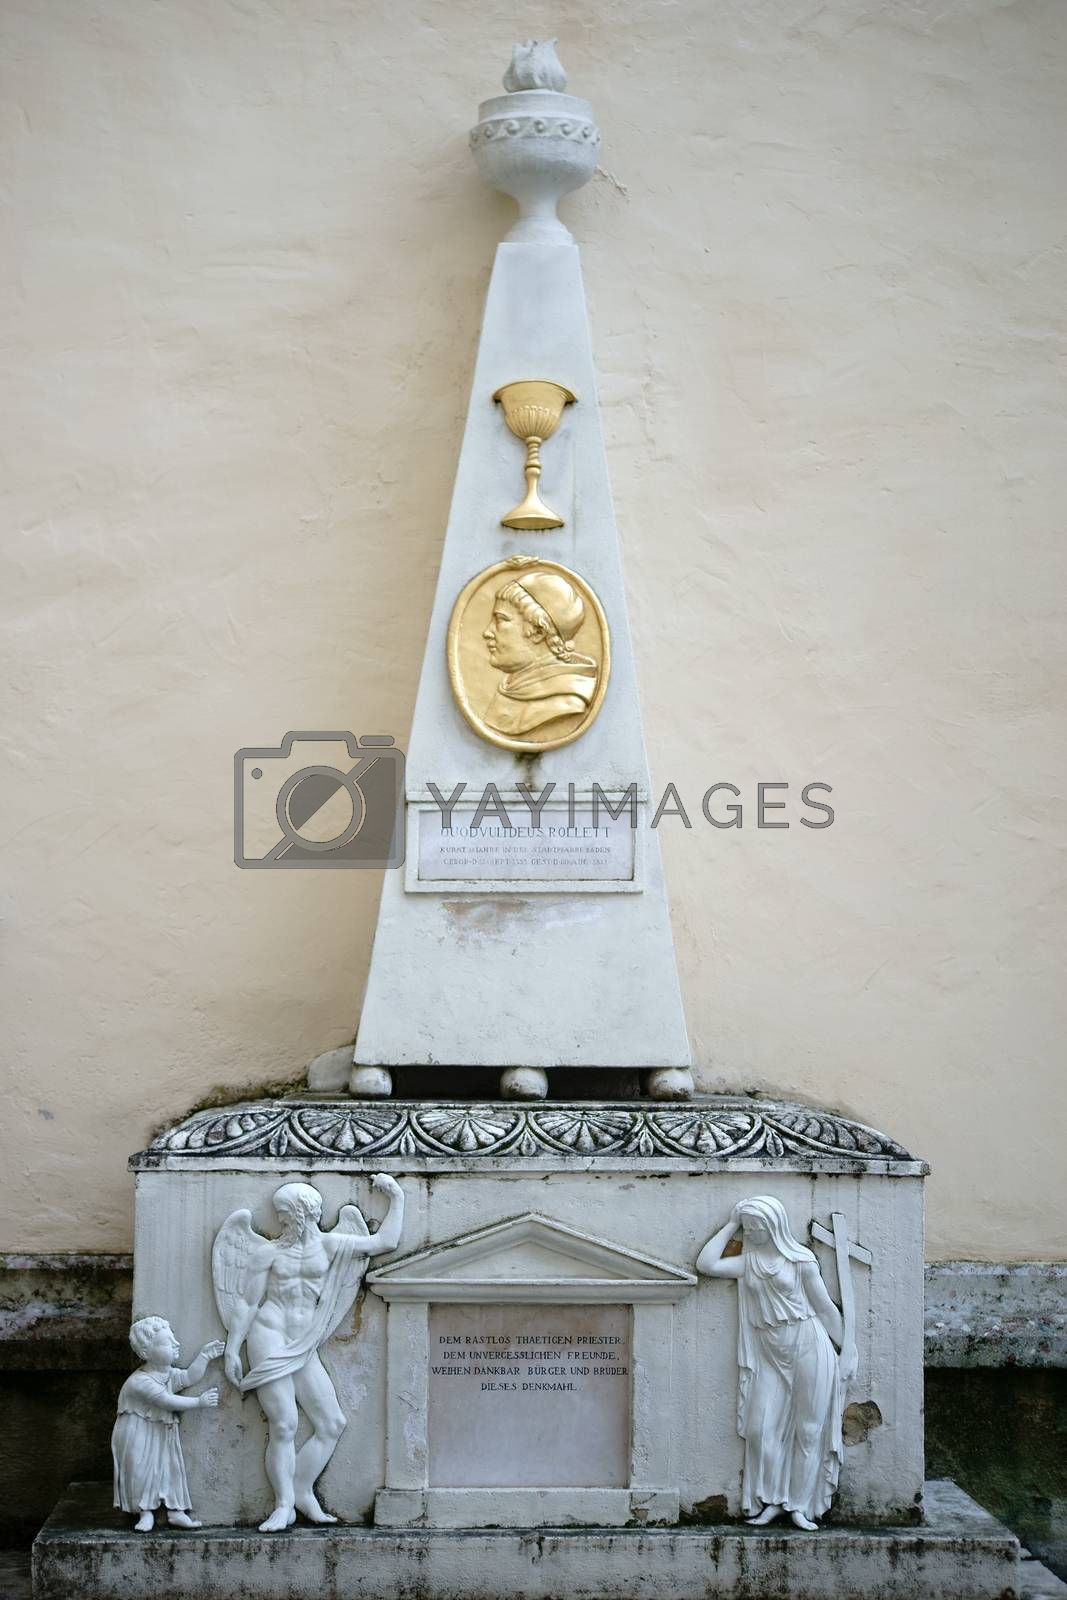 Baden, Austria - November 14, 2015: With angels and gold jewelry decorated monument to the priest Ouodvultdeus Rollett at the Church of St. Stephan on November 14, 2015 Baden near Vienna.